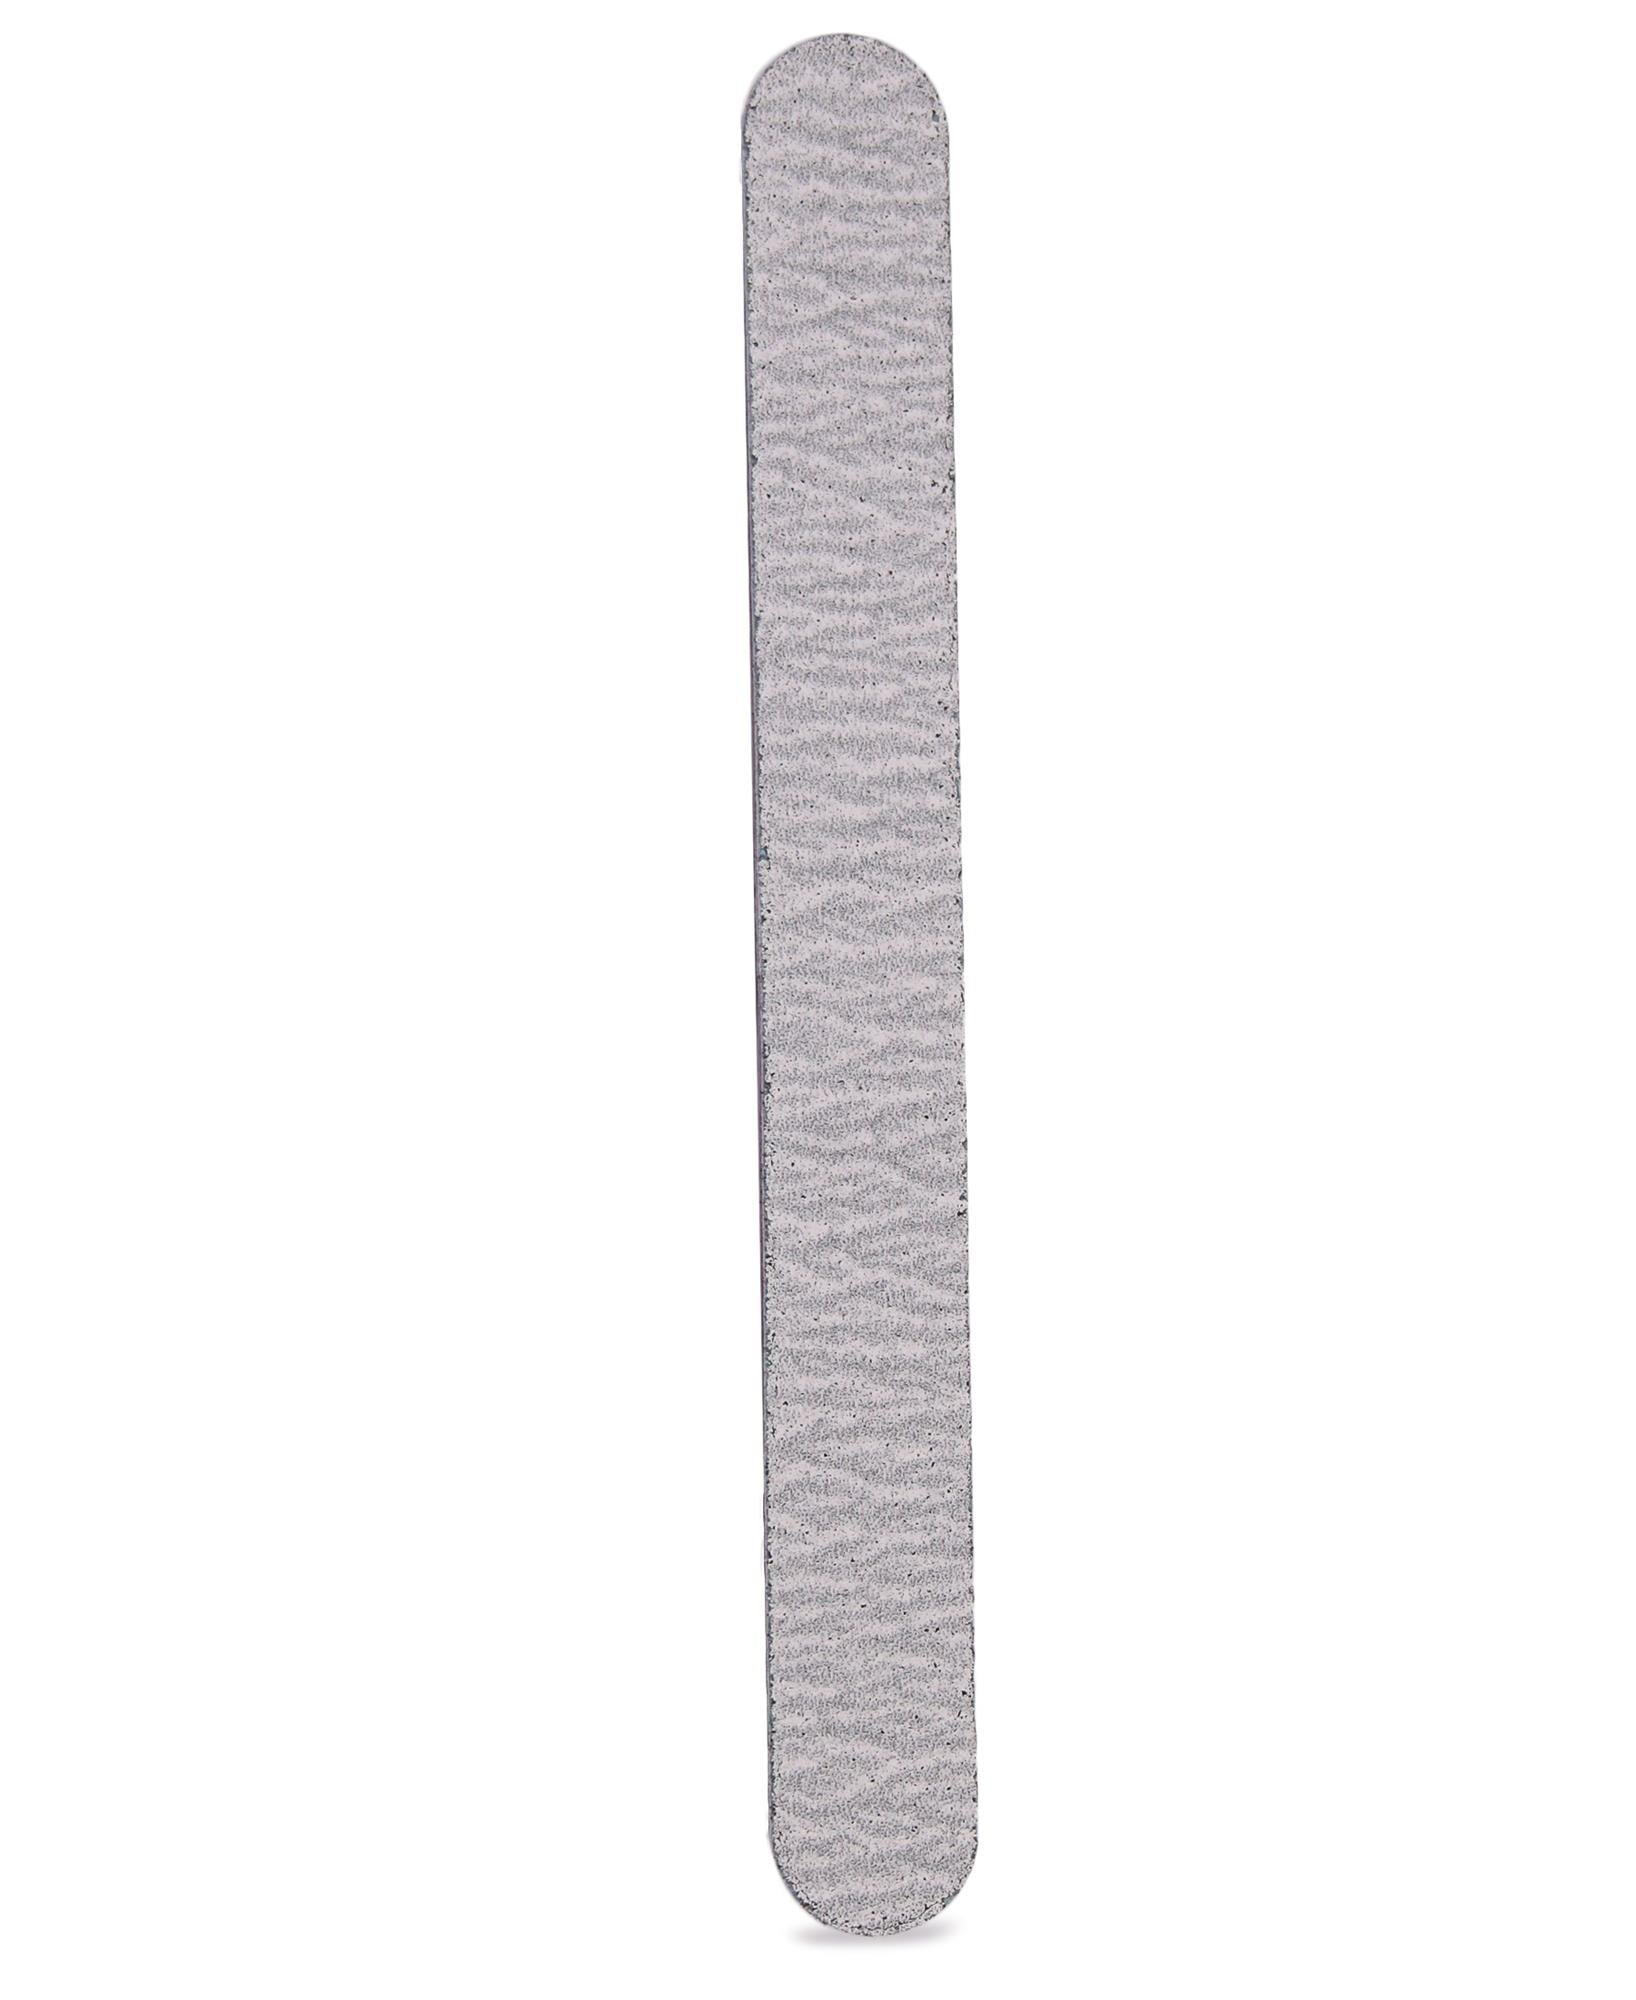 80/80 Grit Nail File - White